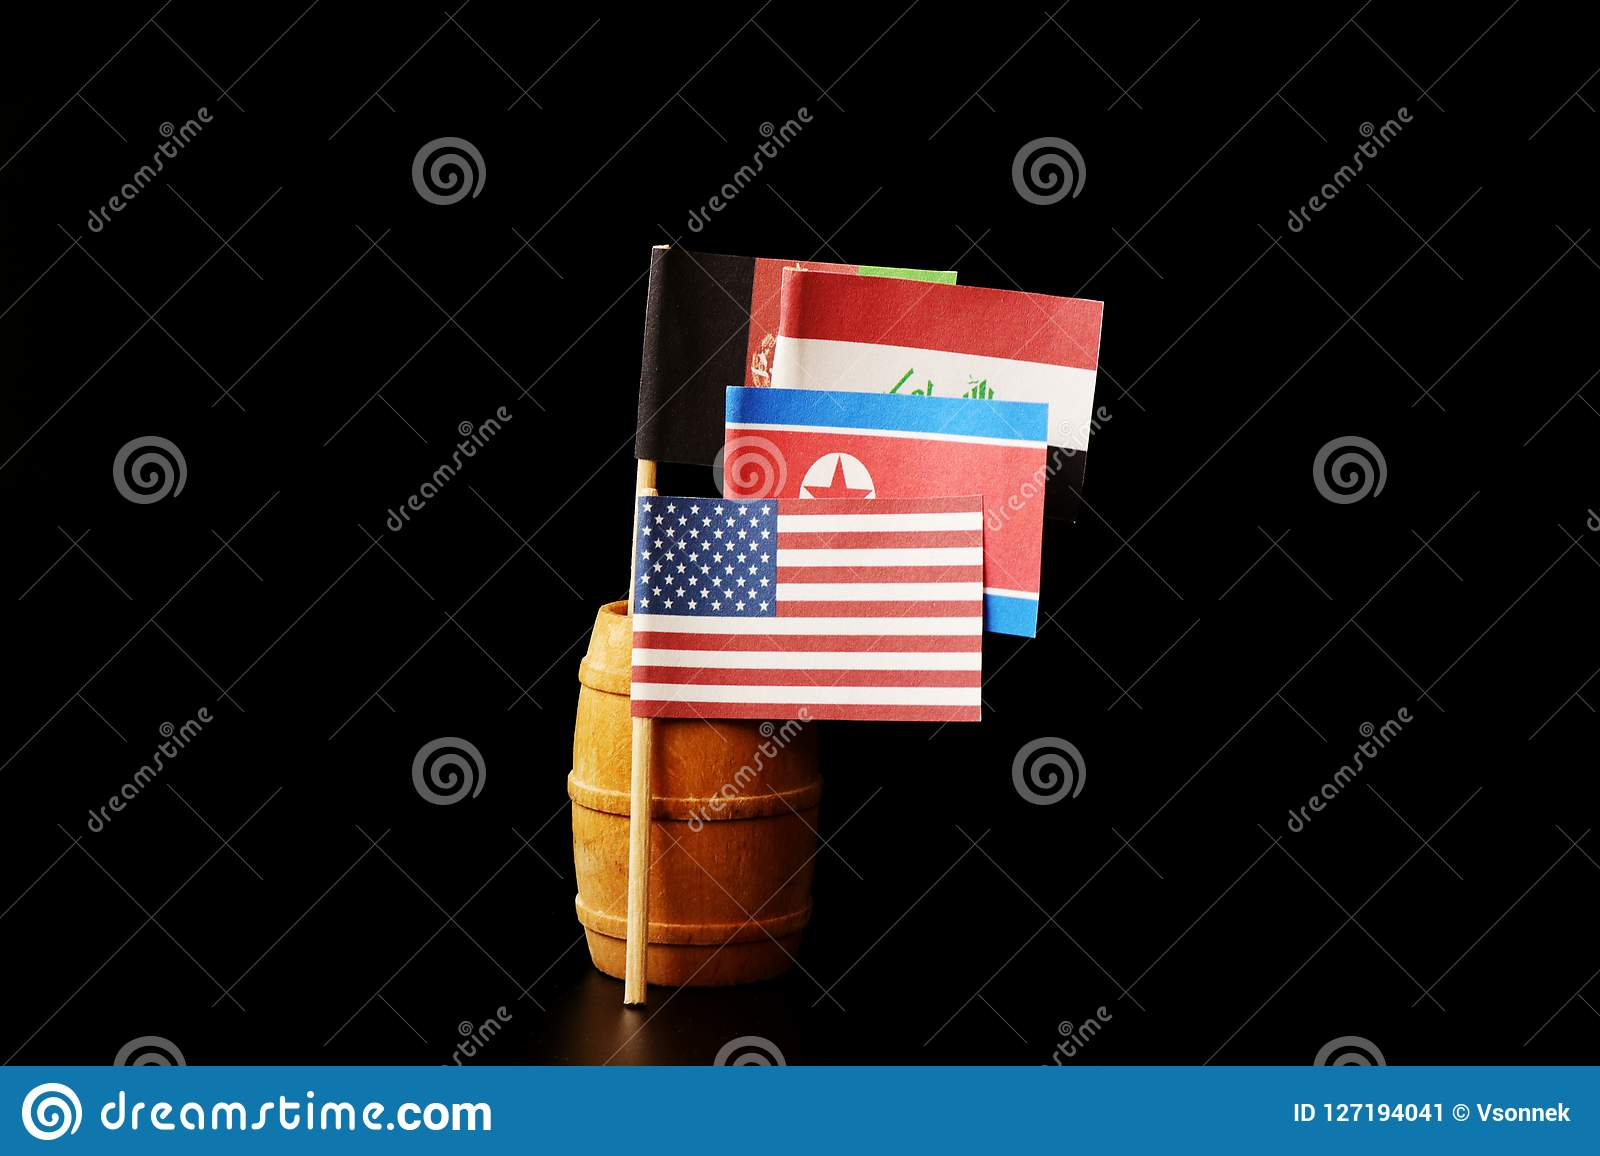 Wee see flags of states where america using their soldiers. Afghanistan, Iraq and North Korea where it is on edge.